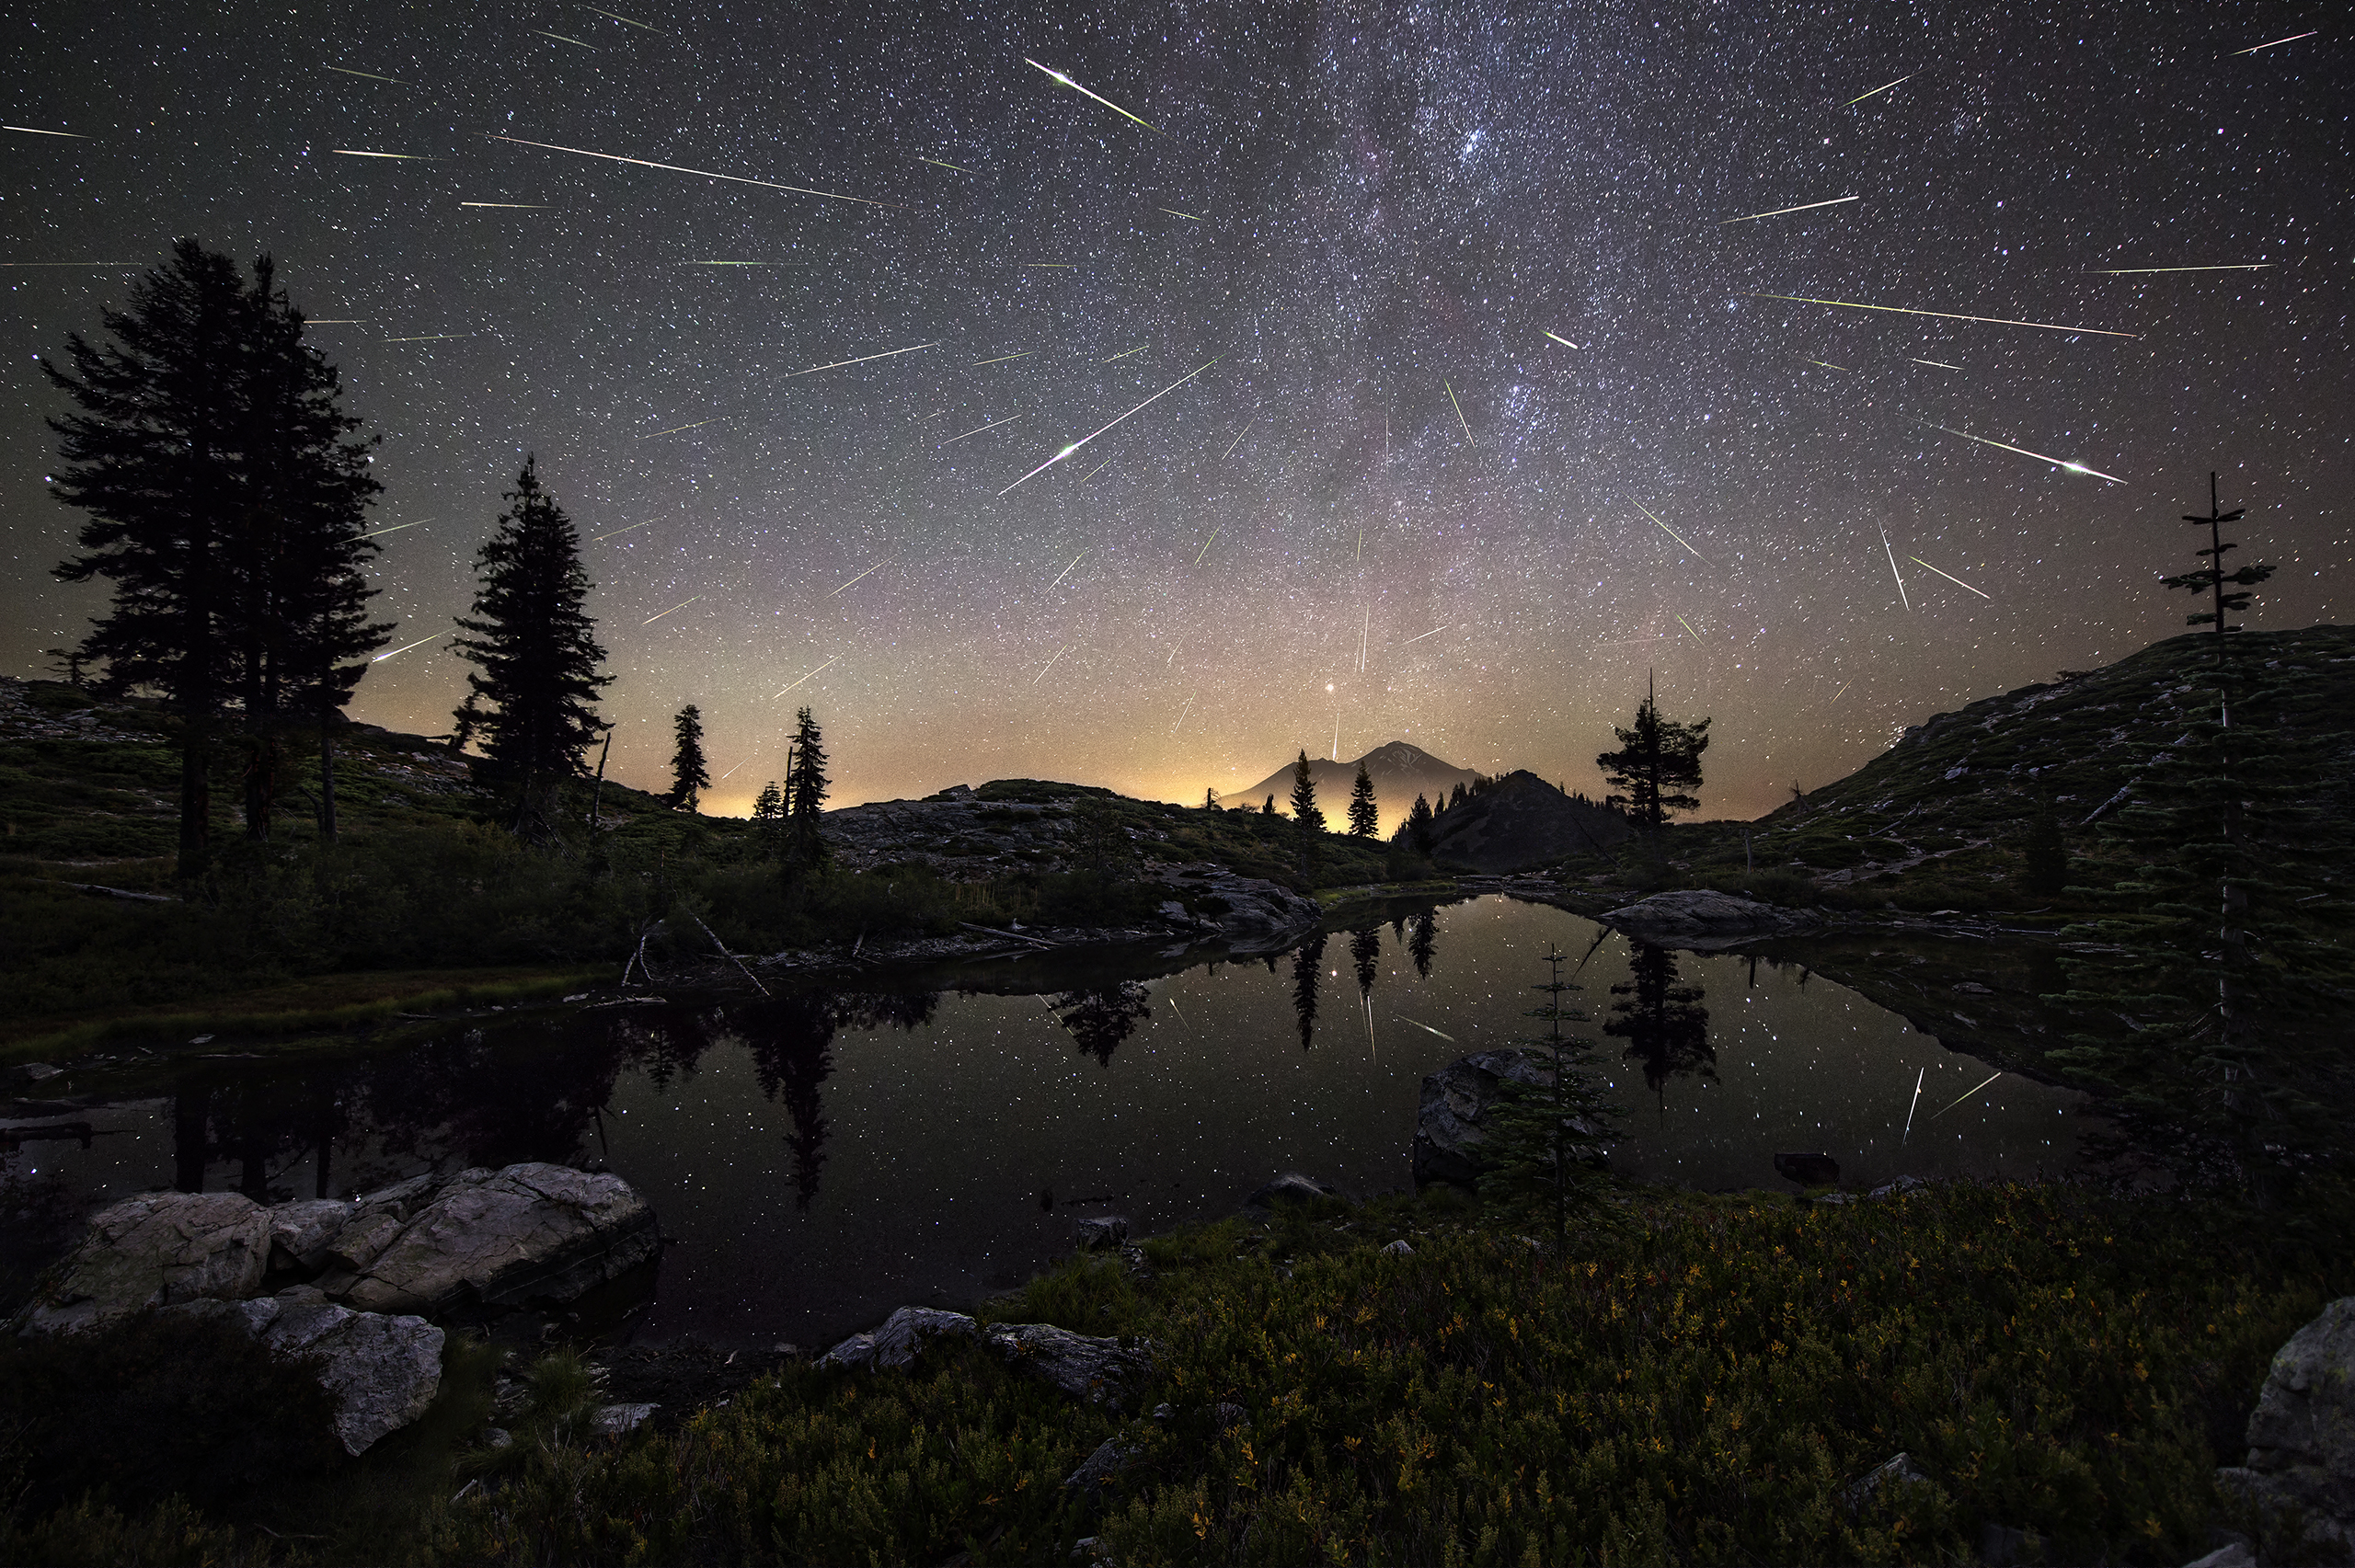 The Perseid Meteor Shower shoots across the sky in the early hours of Aug. 13, 2015, appearing to cascade from Mount Shasta in Calif., USA. The composite image features roughly 65 meteors captured by the photographer between 12:30am and 4:30am.